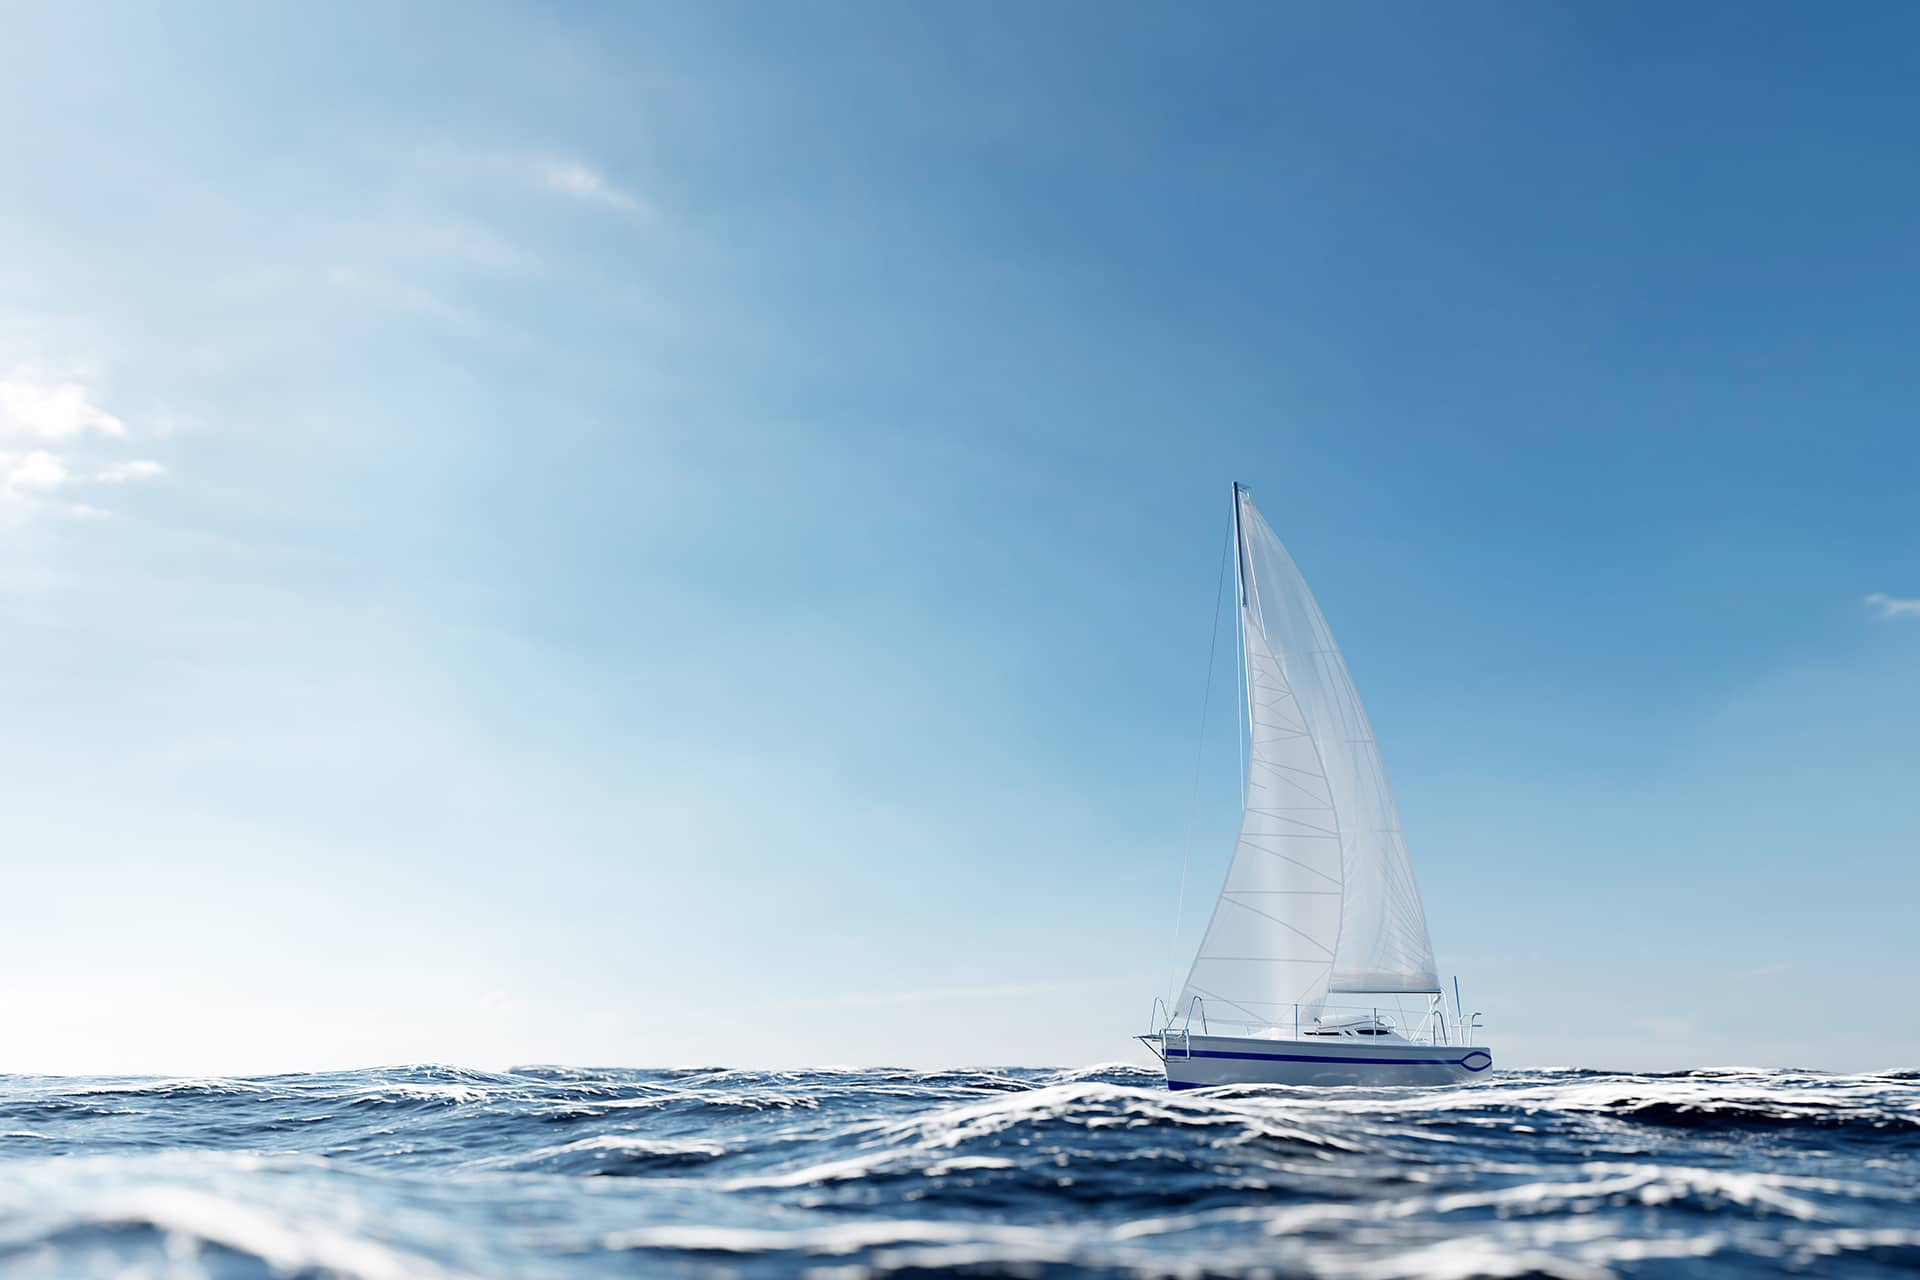 Sailing yacht on the ocean at sunny day